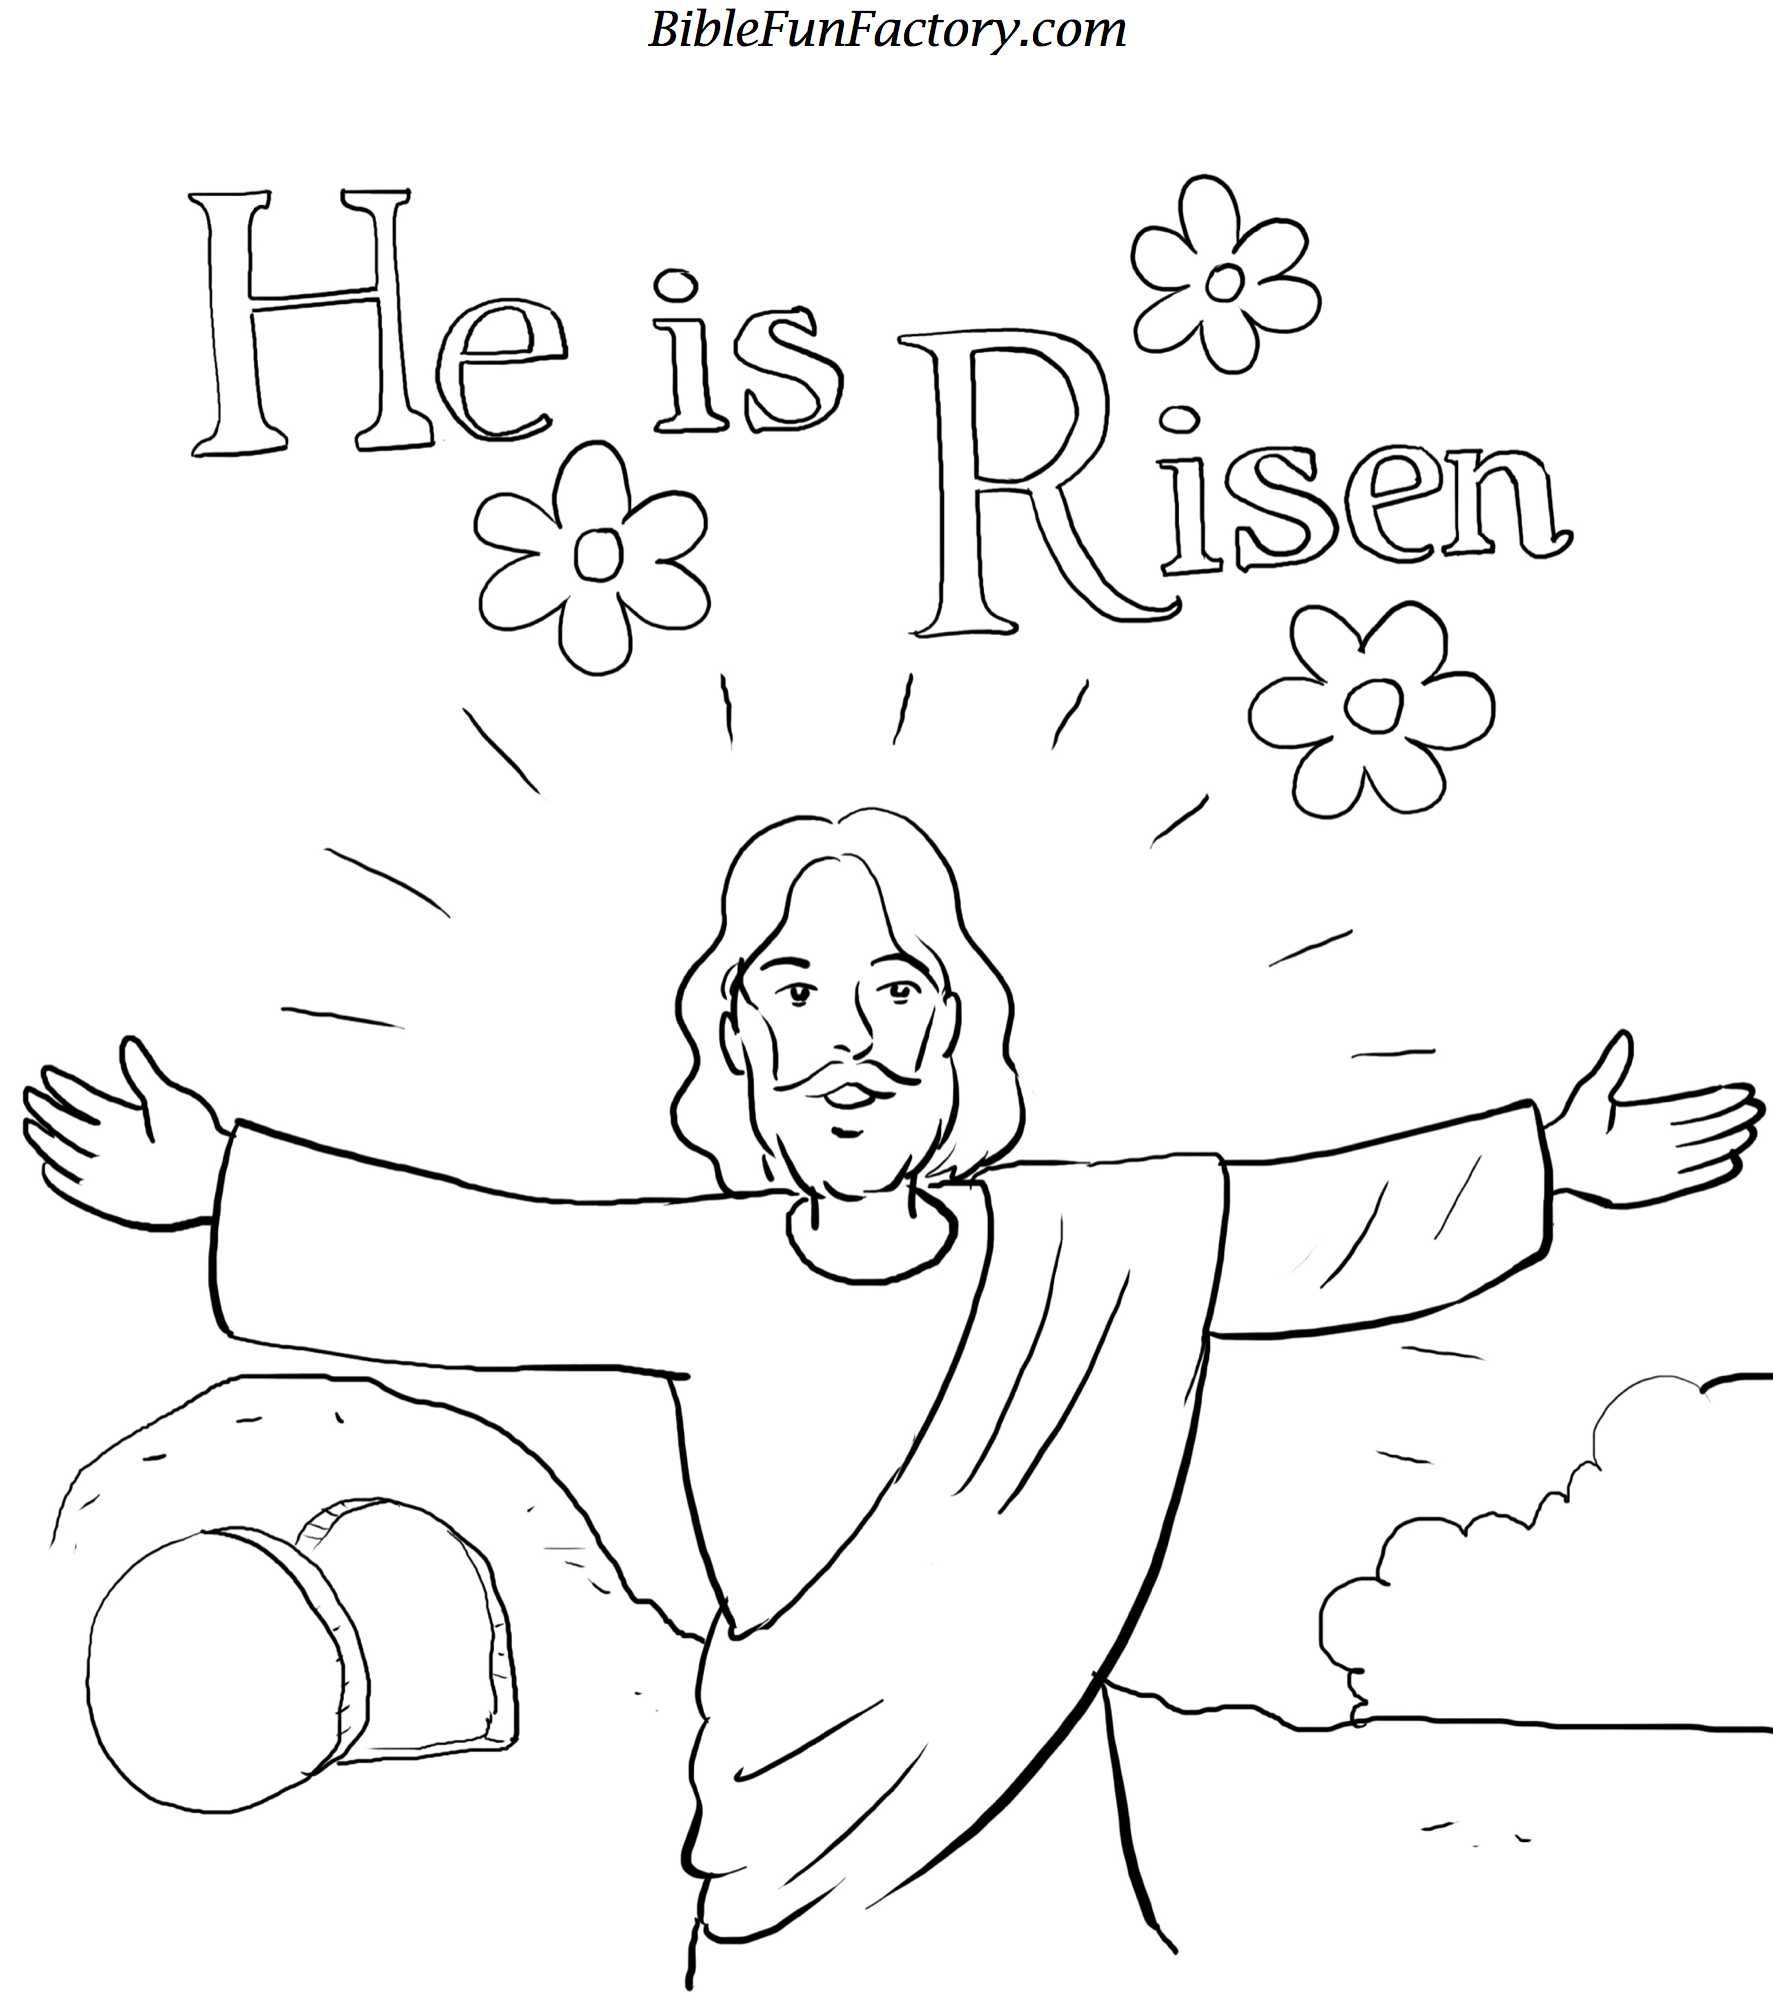 Free coloring pages for middle school